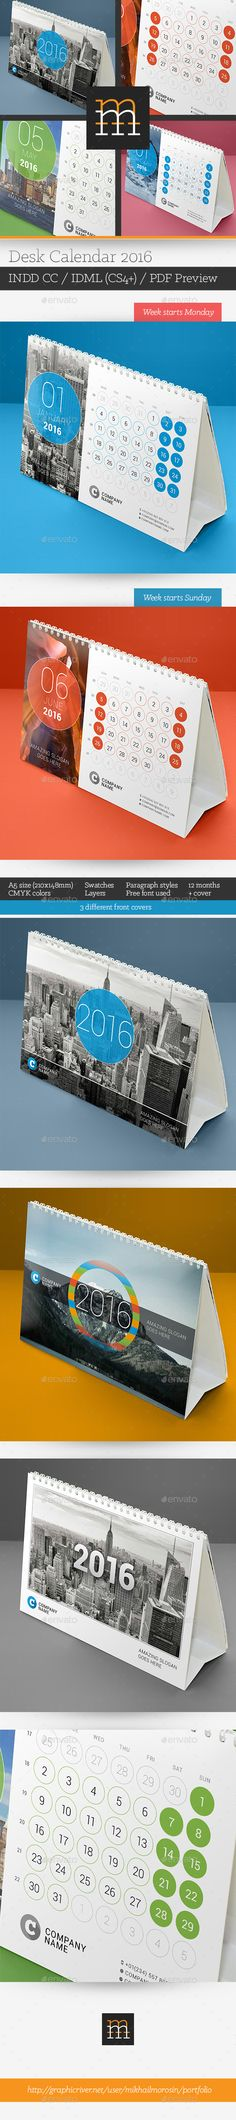 Desk Calendar For 2017 | Updated | Desk Calendars, Calendar And